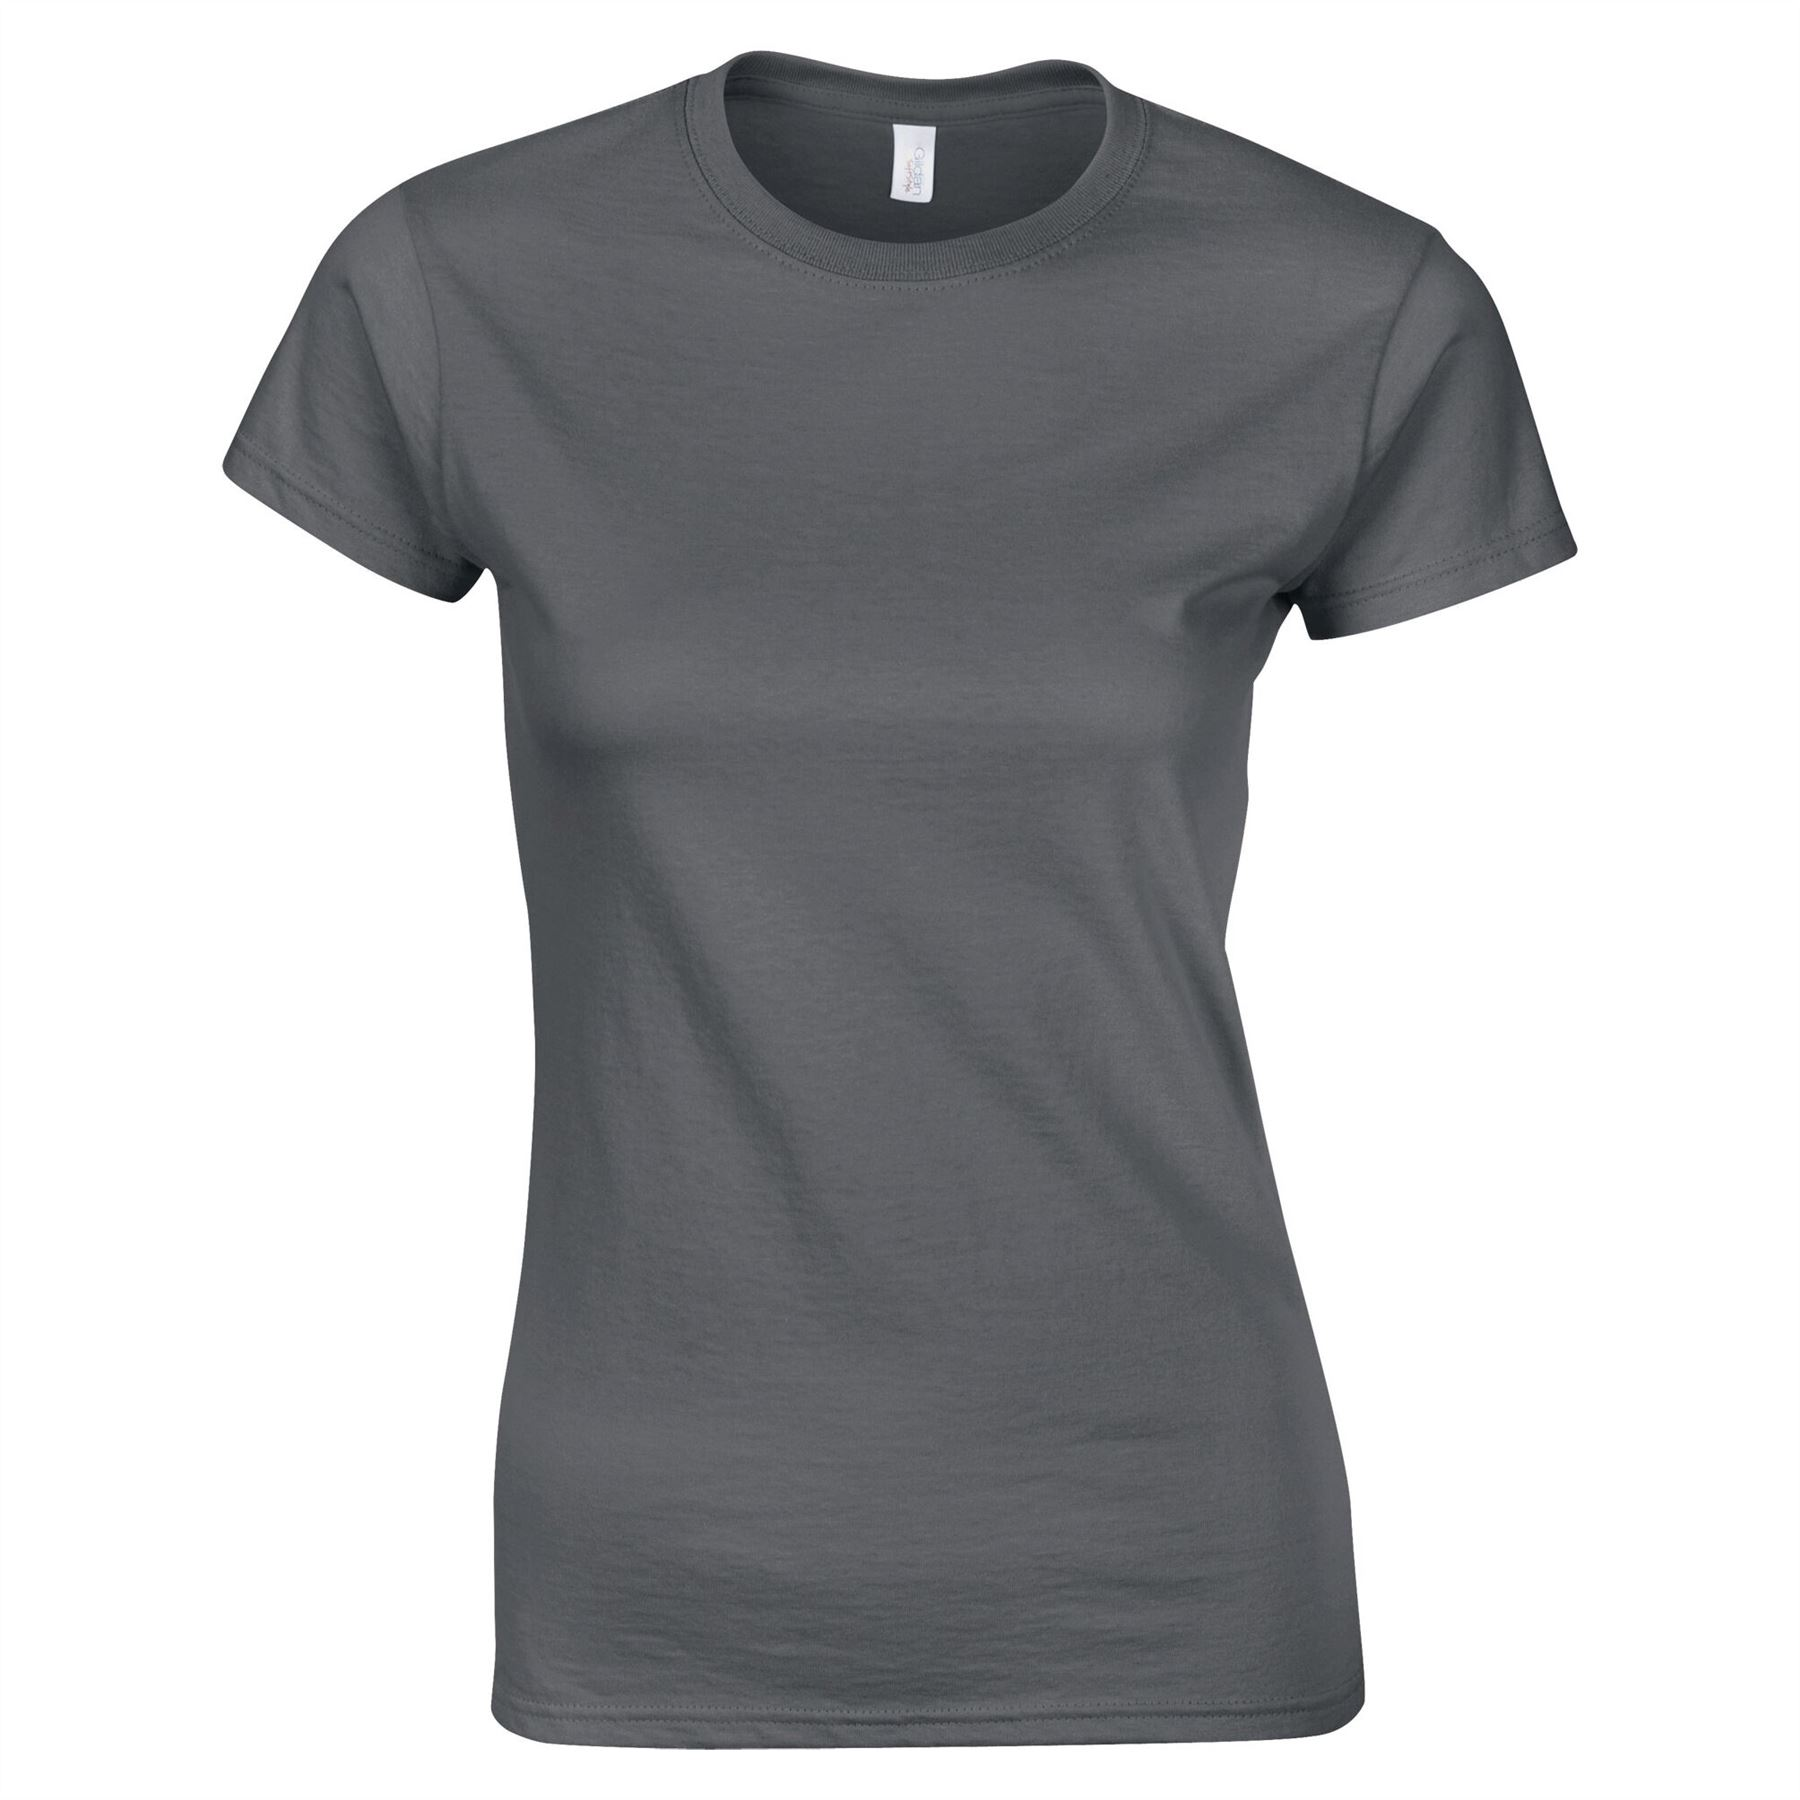 Ladies Gildan Softstyle Plain Tshirt Heavy Cotton Womens Ringspun Fit Top Tee